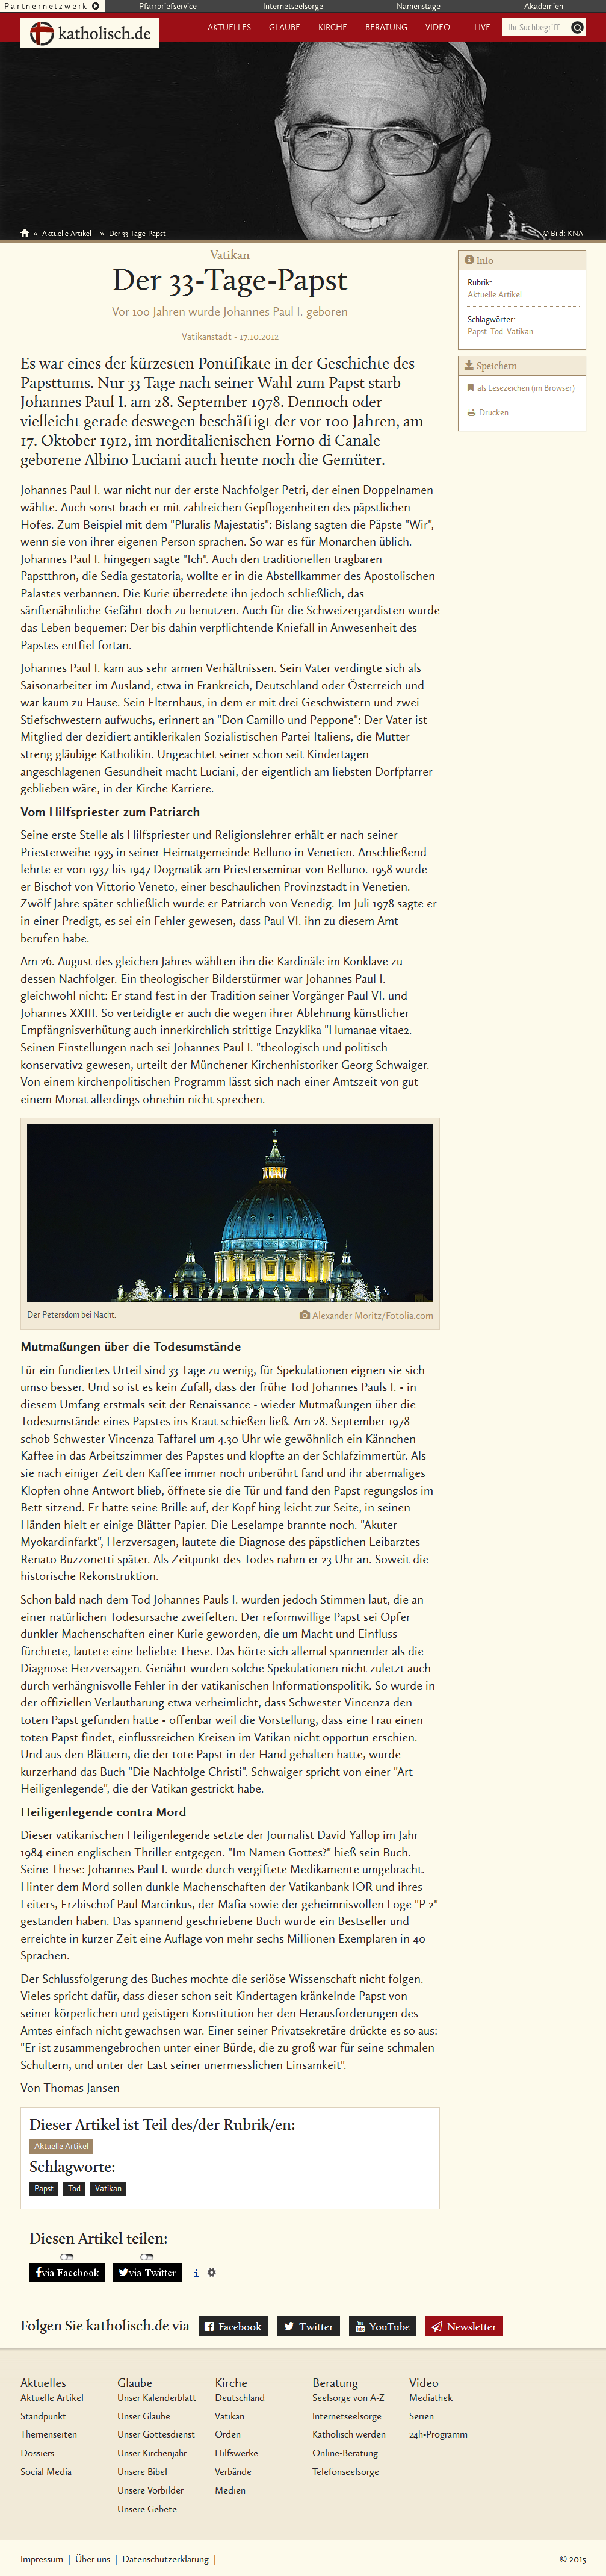 Click image for larger version.  Name:Der 33 tage Papst.png Views:42 Size:812.8 KB ID:14866